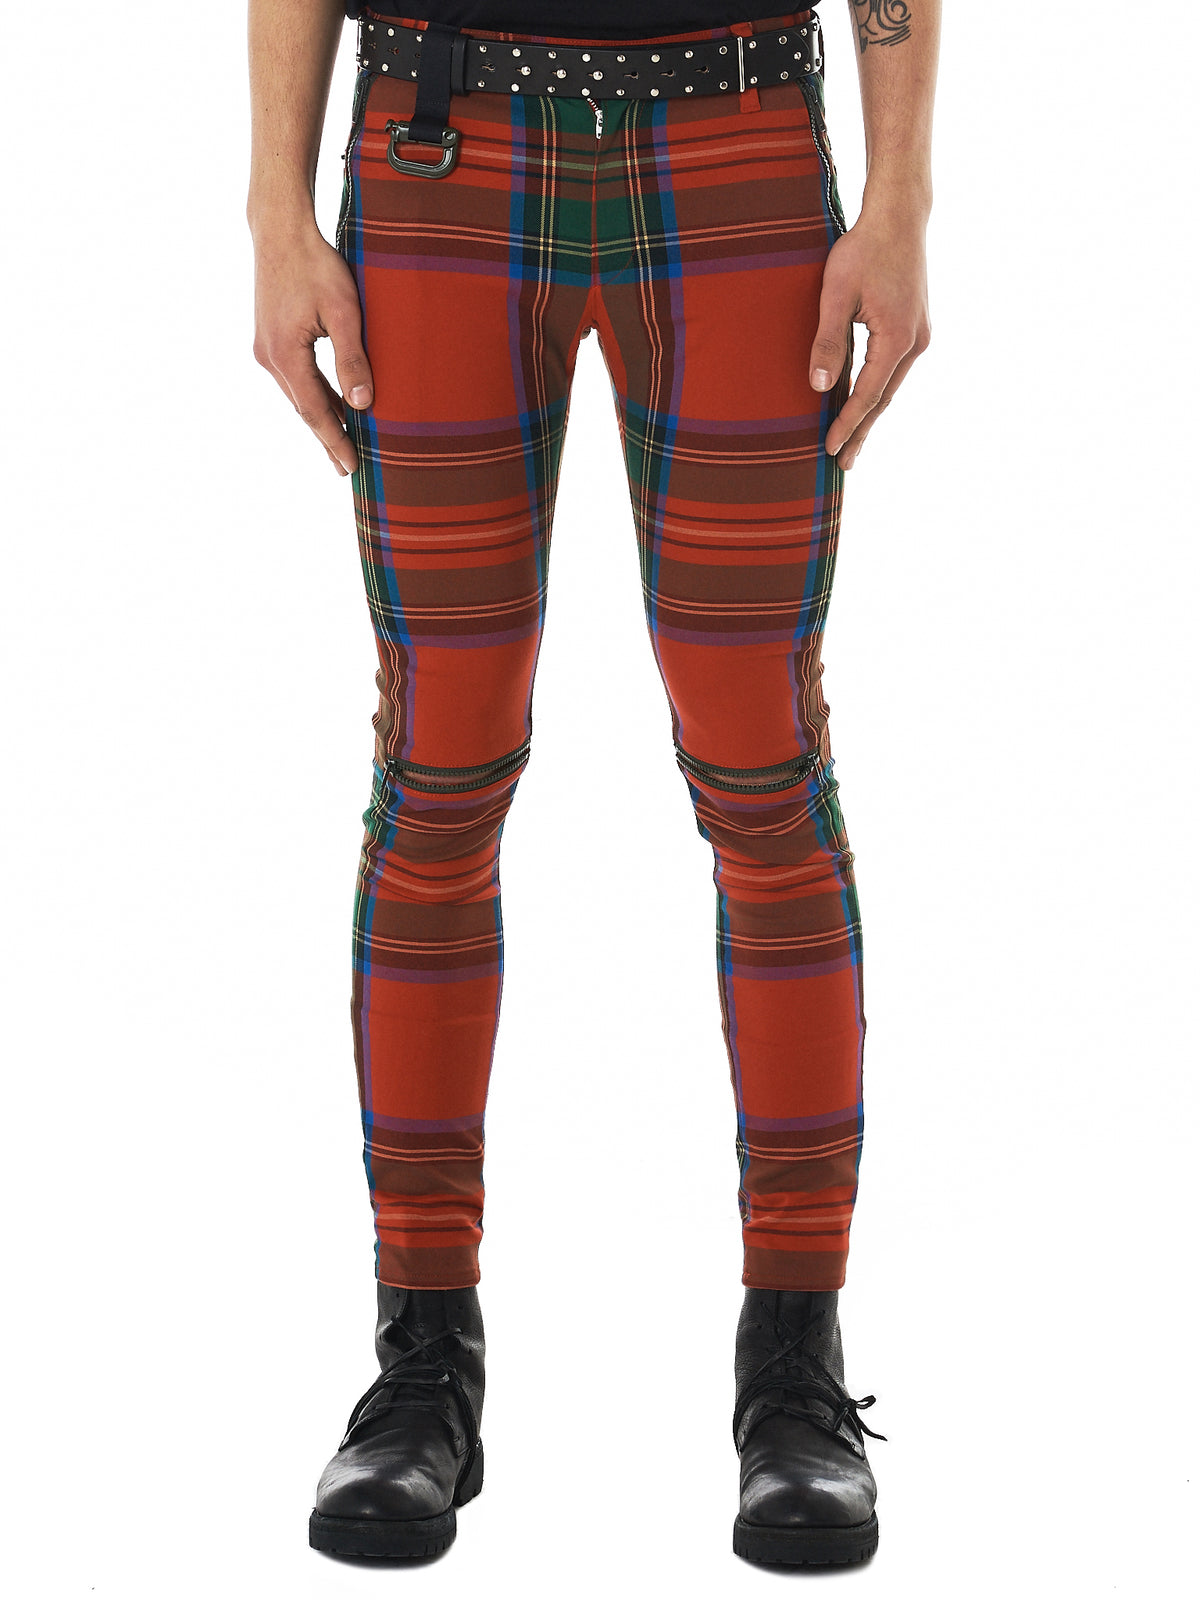 Undercover Plaid Trousers - Hlorenzo Front